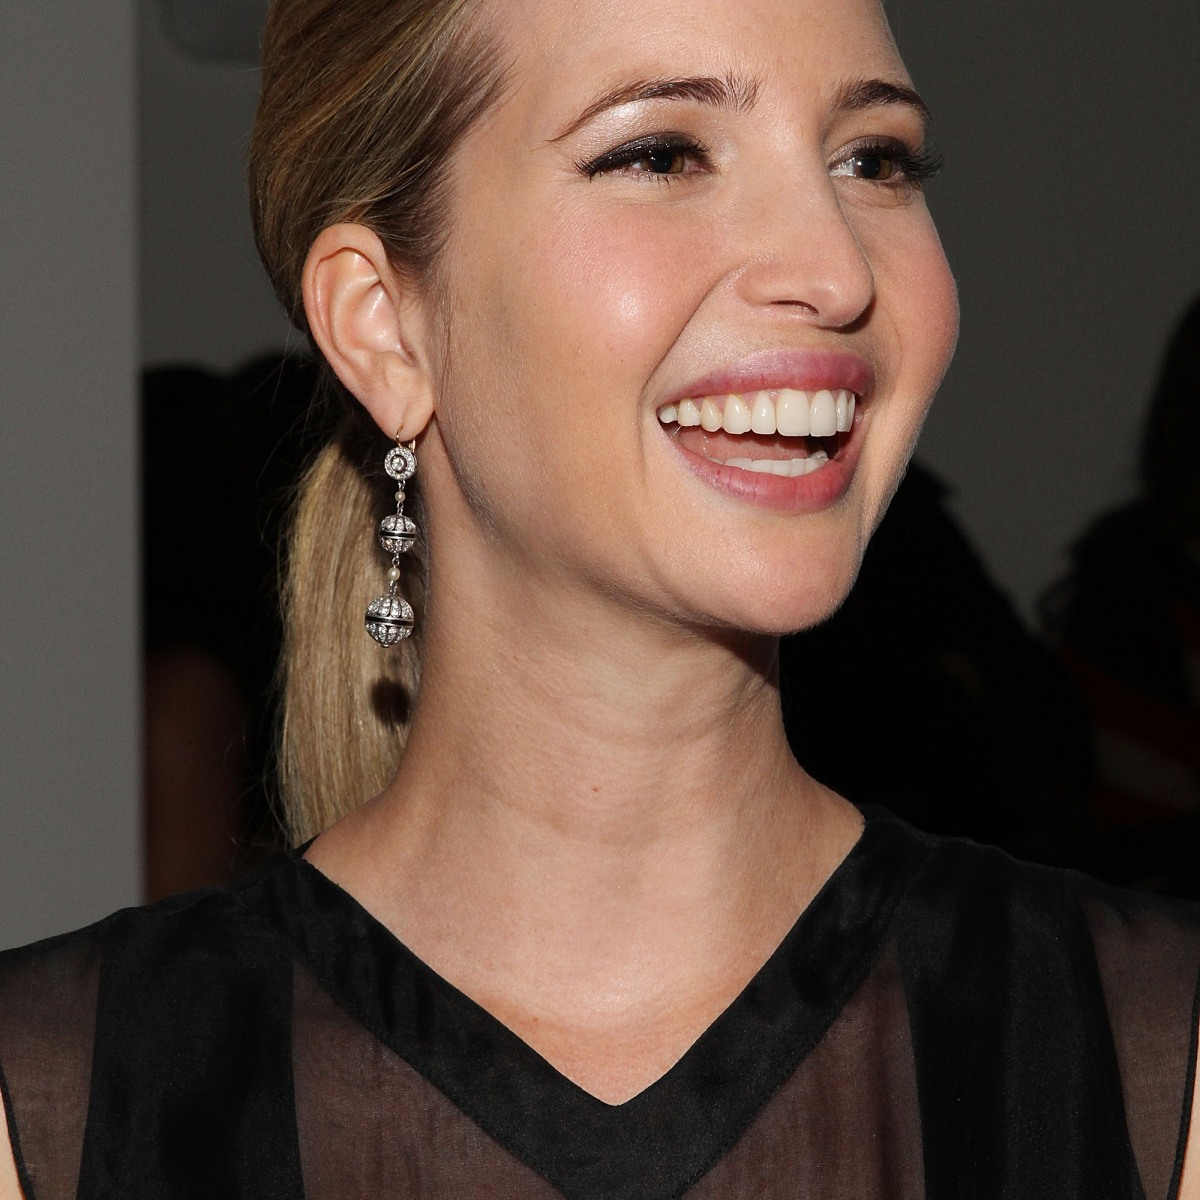 Ivanka Trump Plastic Surgery See Her Changing Looks Over The Years